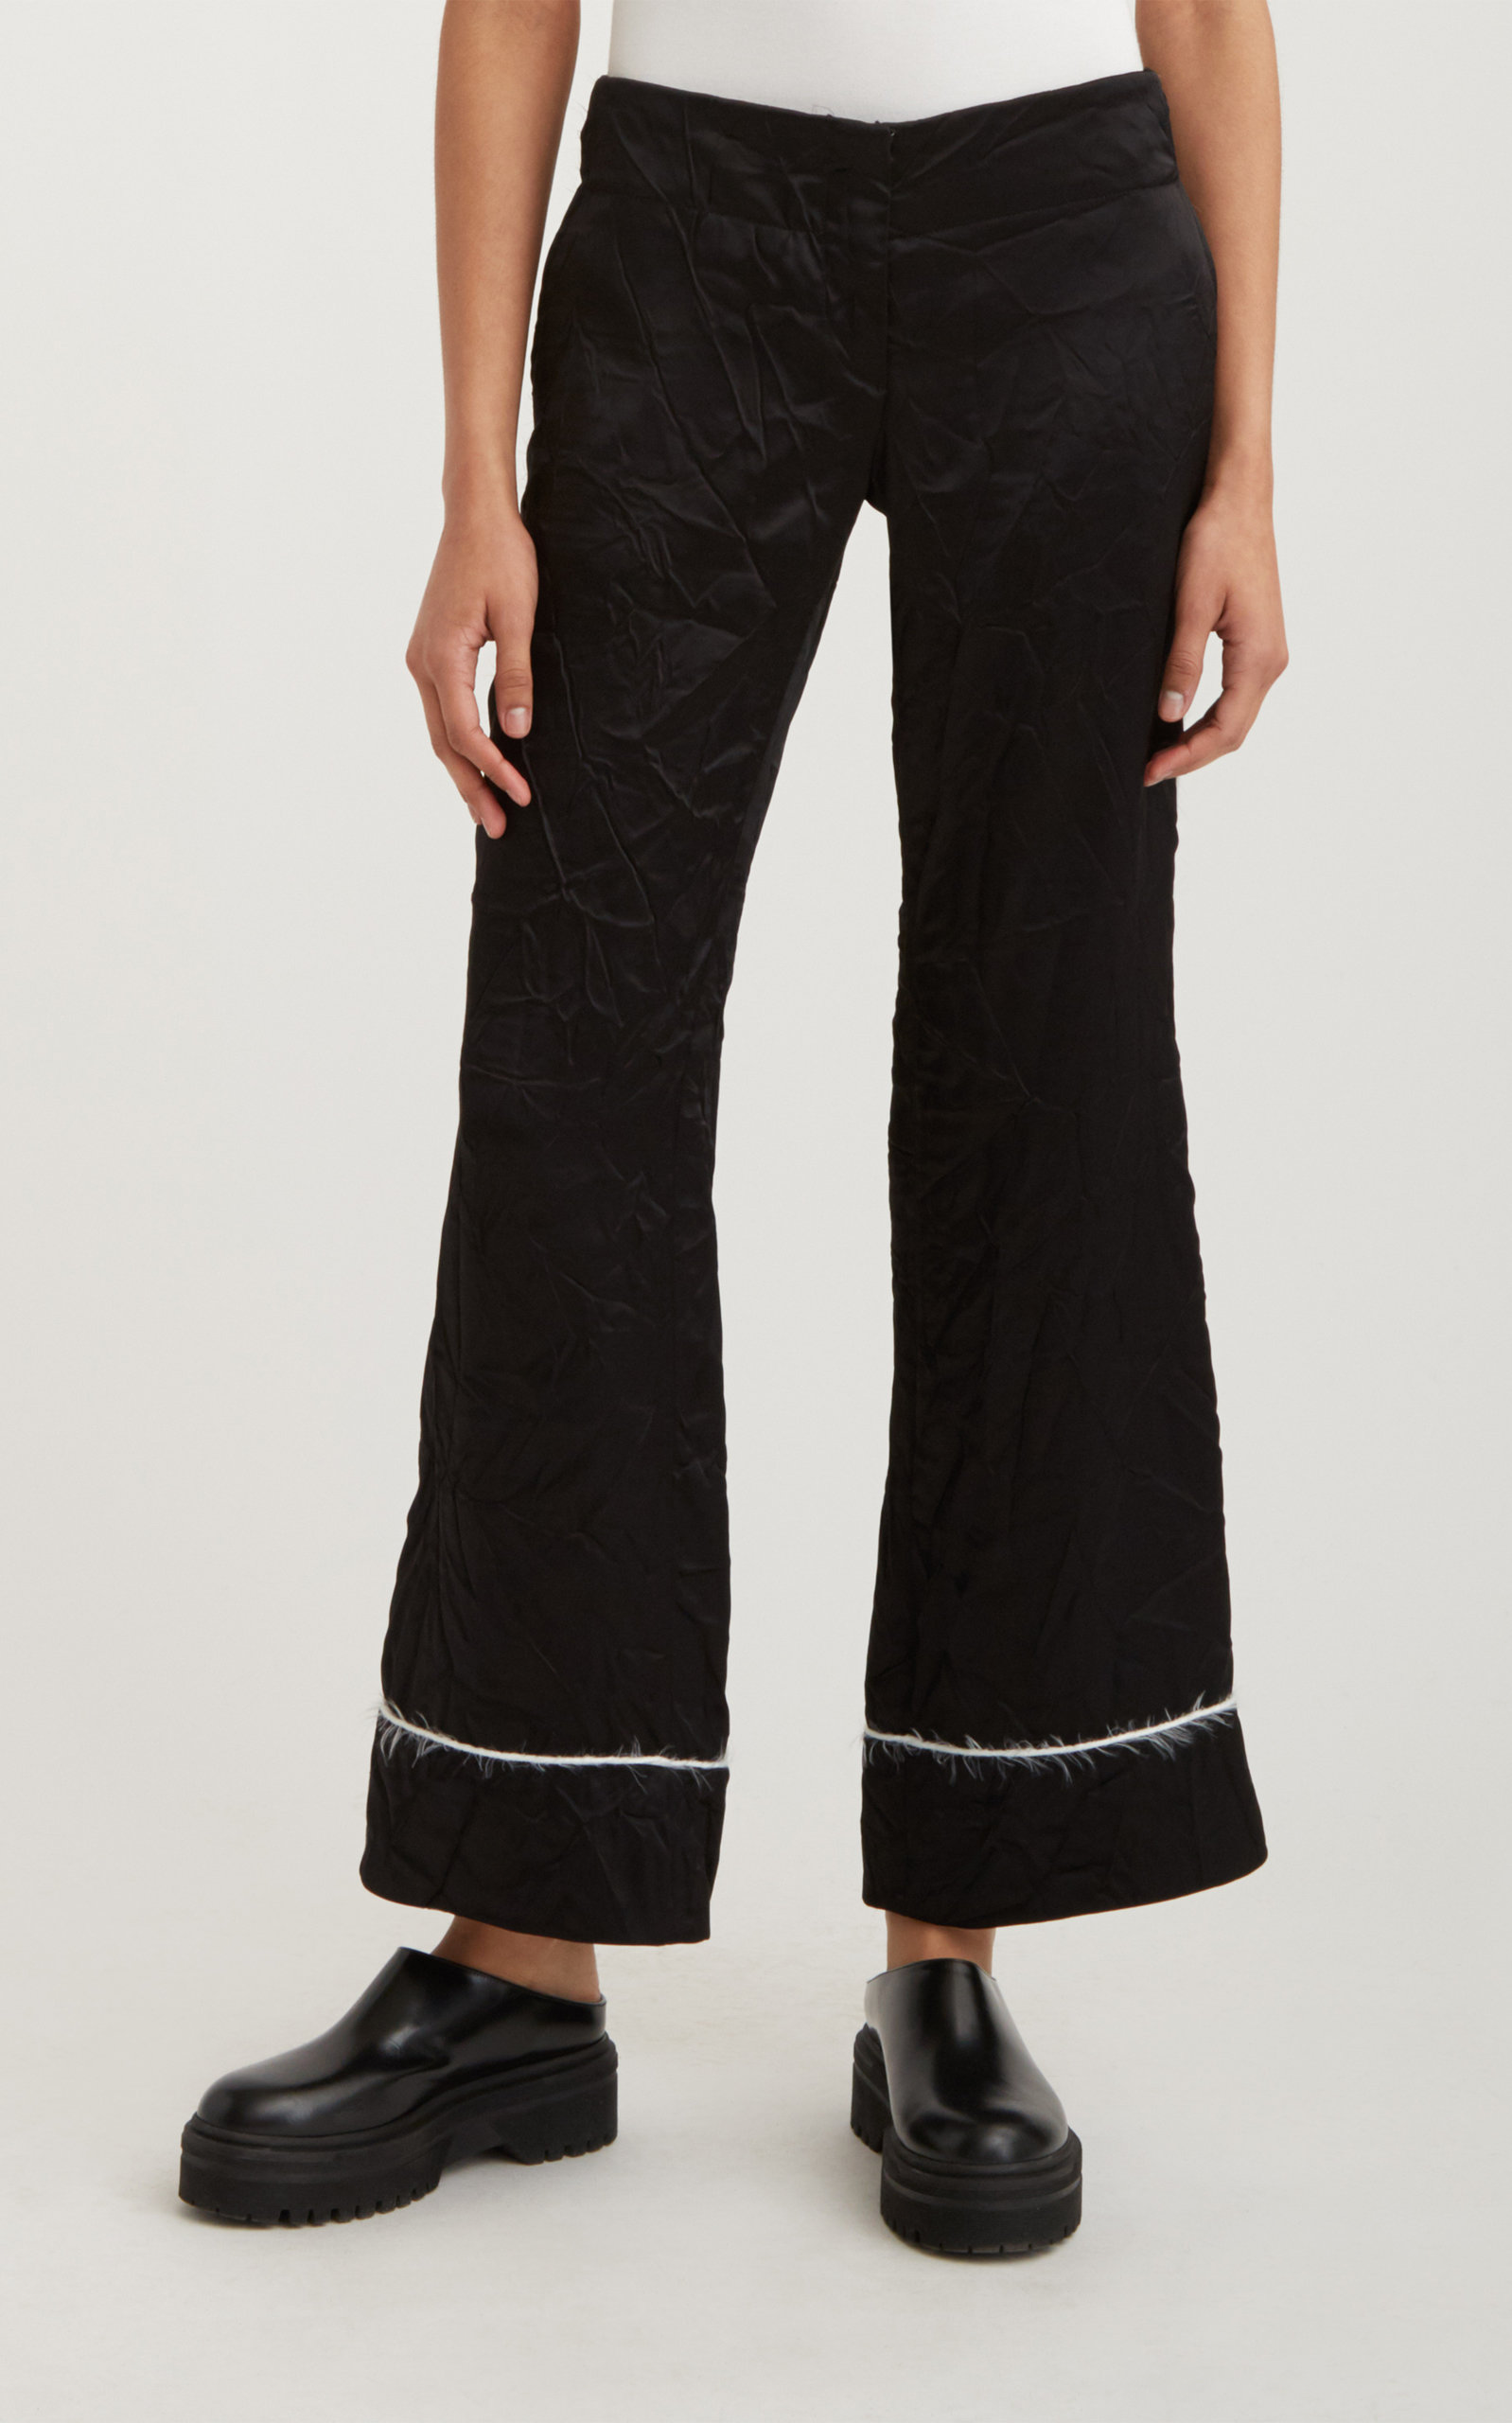 Women's Piped Cropped Pajama Trouser